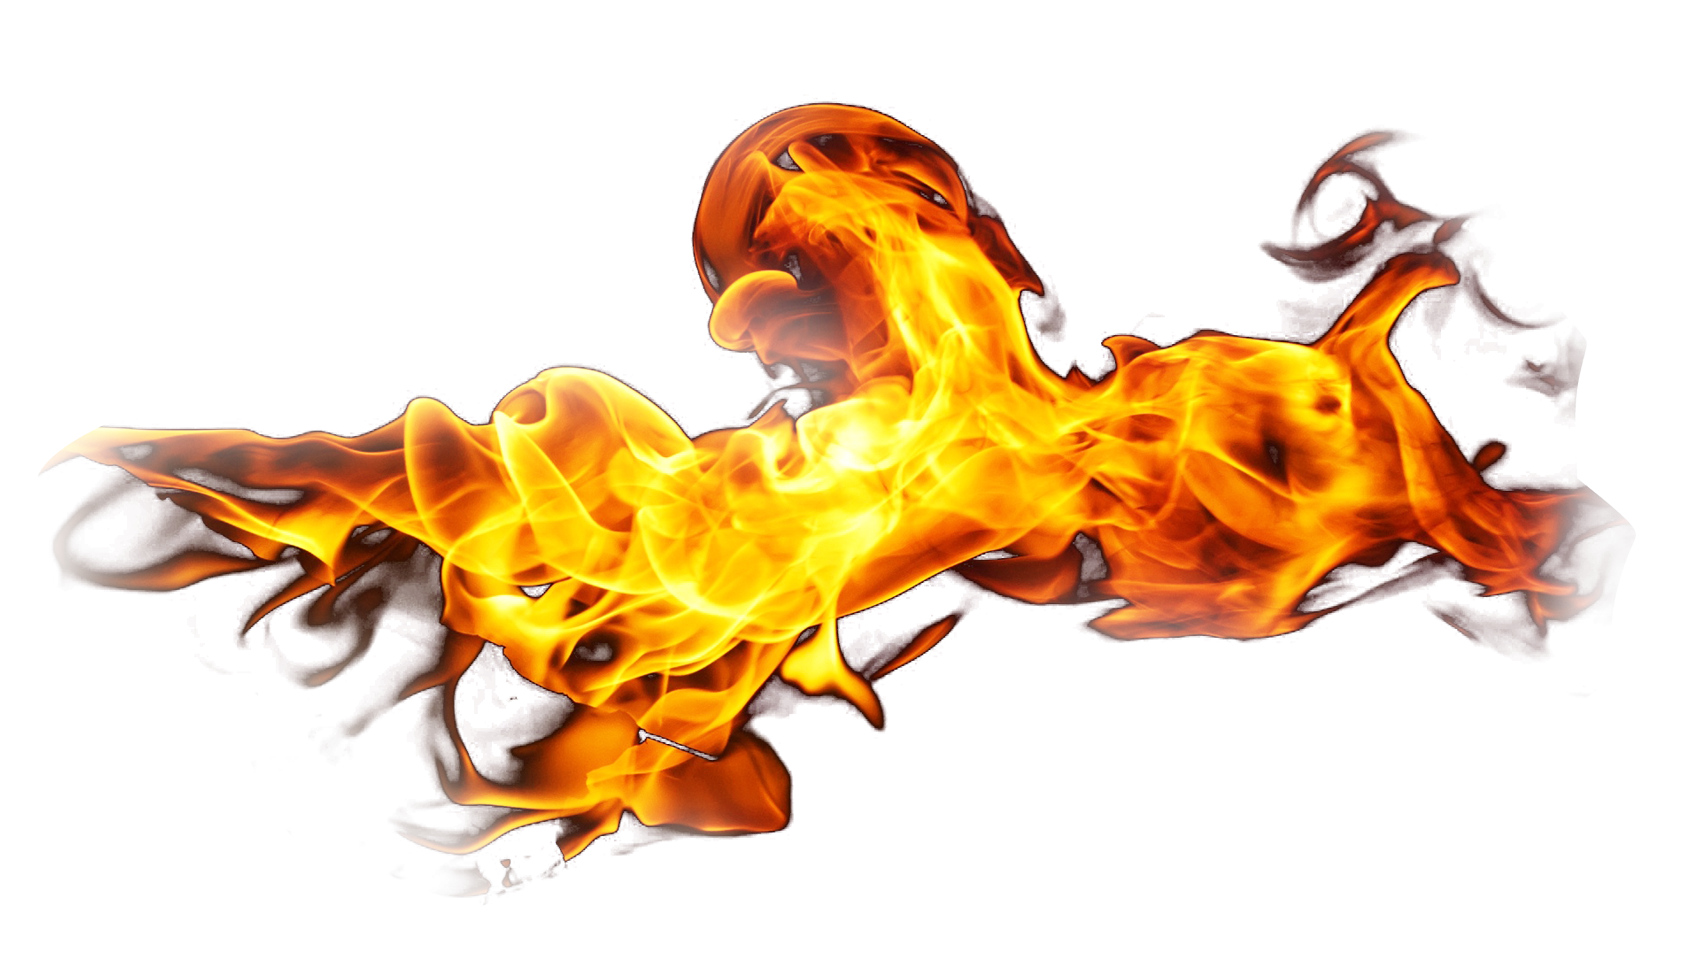 Image pngpix . Fire png picture freeuse